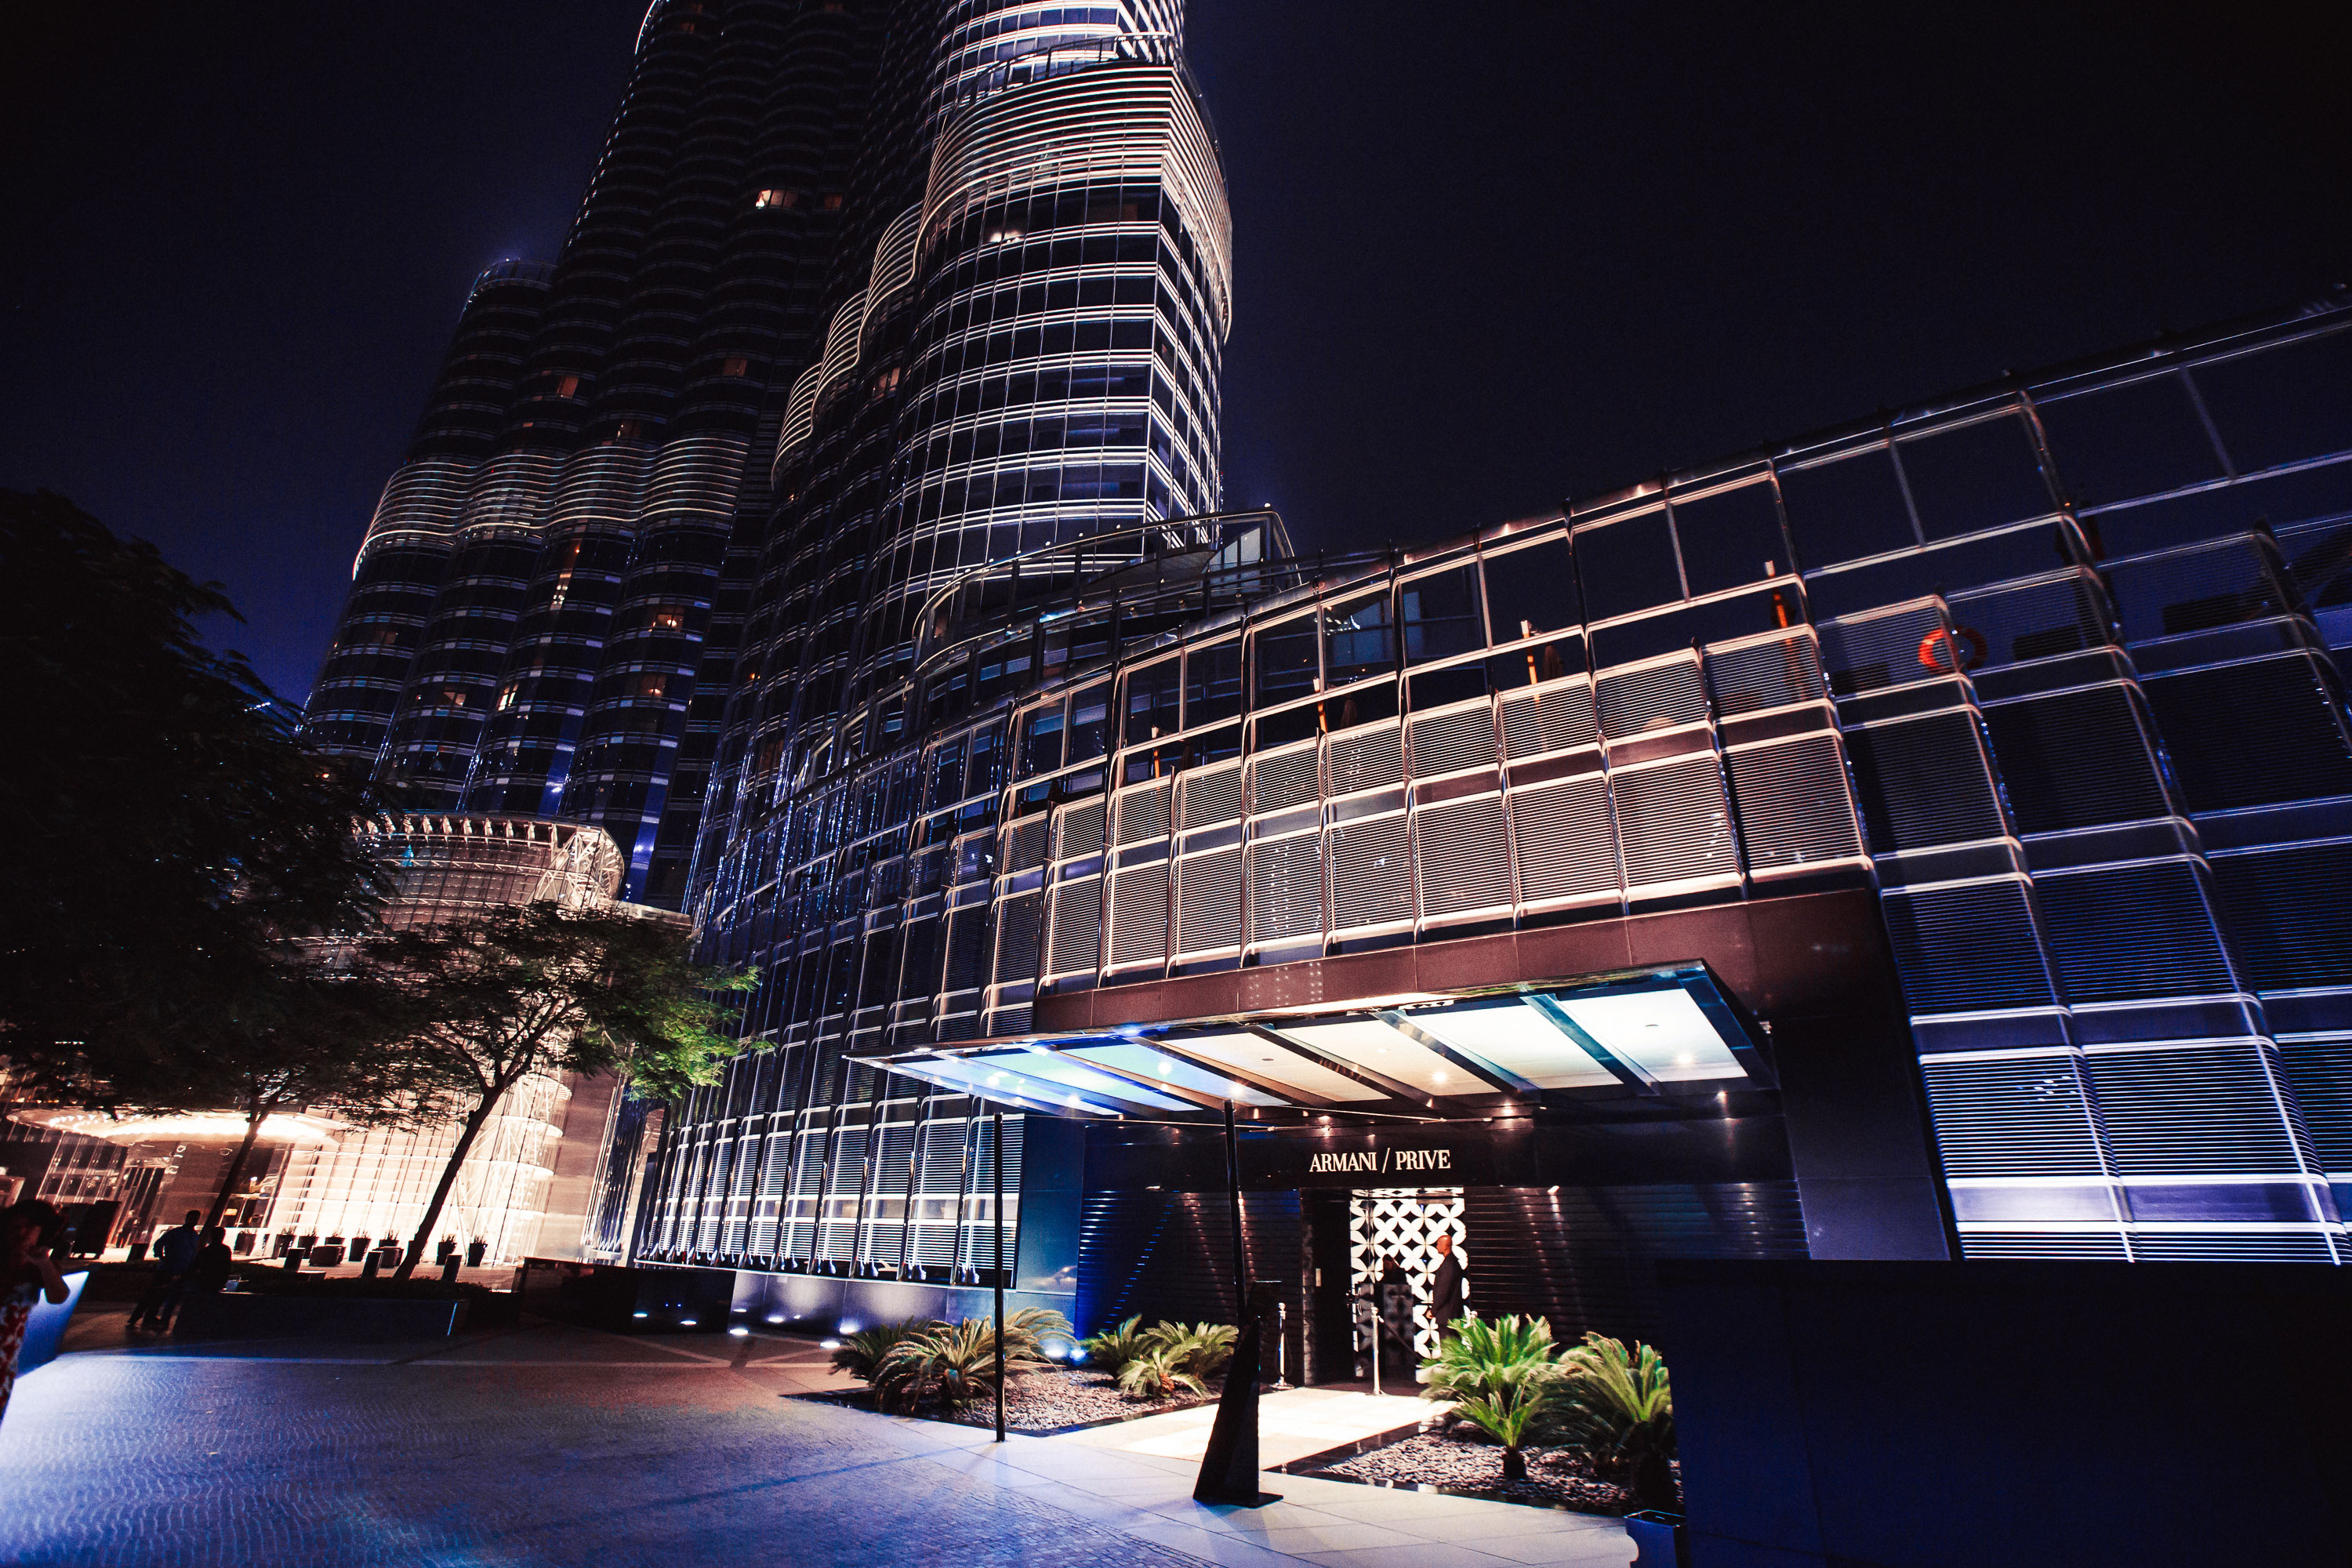 Armani Prive at Burj Khalifa - venue outside